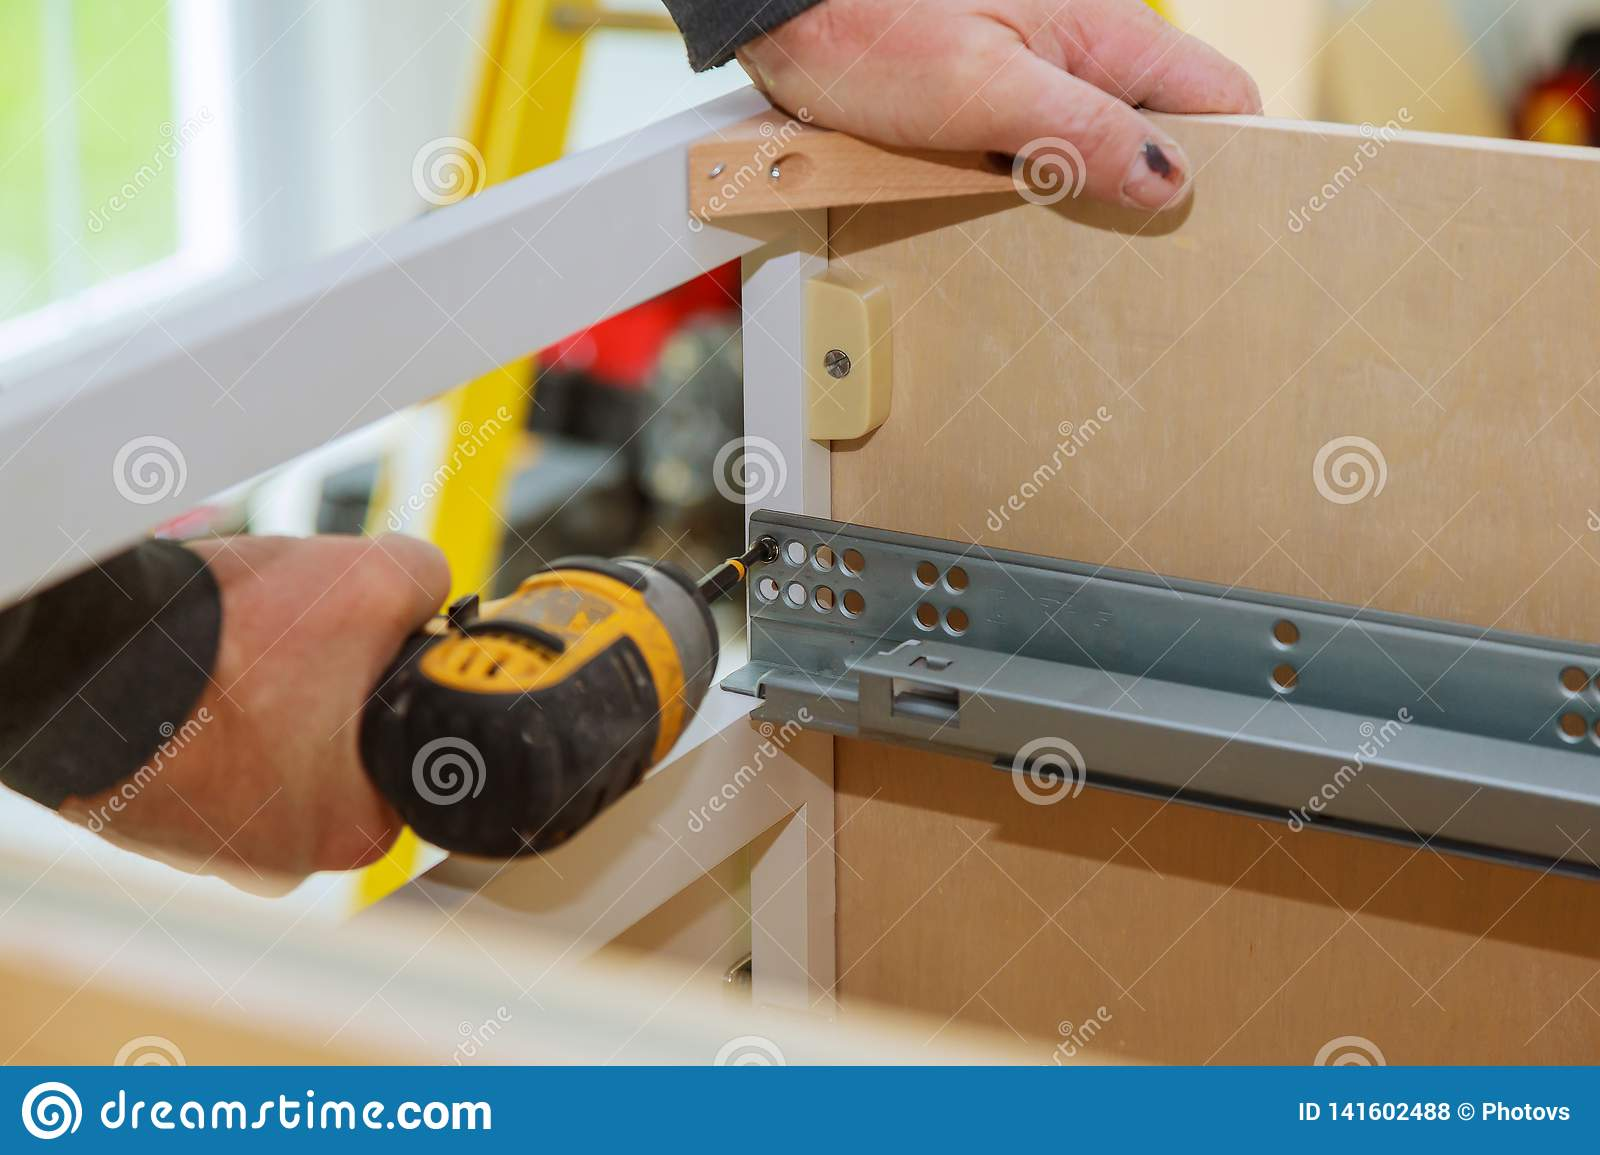 Mounting Furniture With Screwdriver Fixing Cabinet Drawers